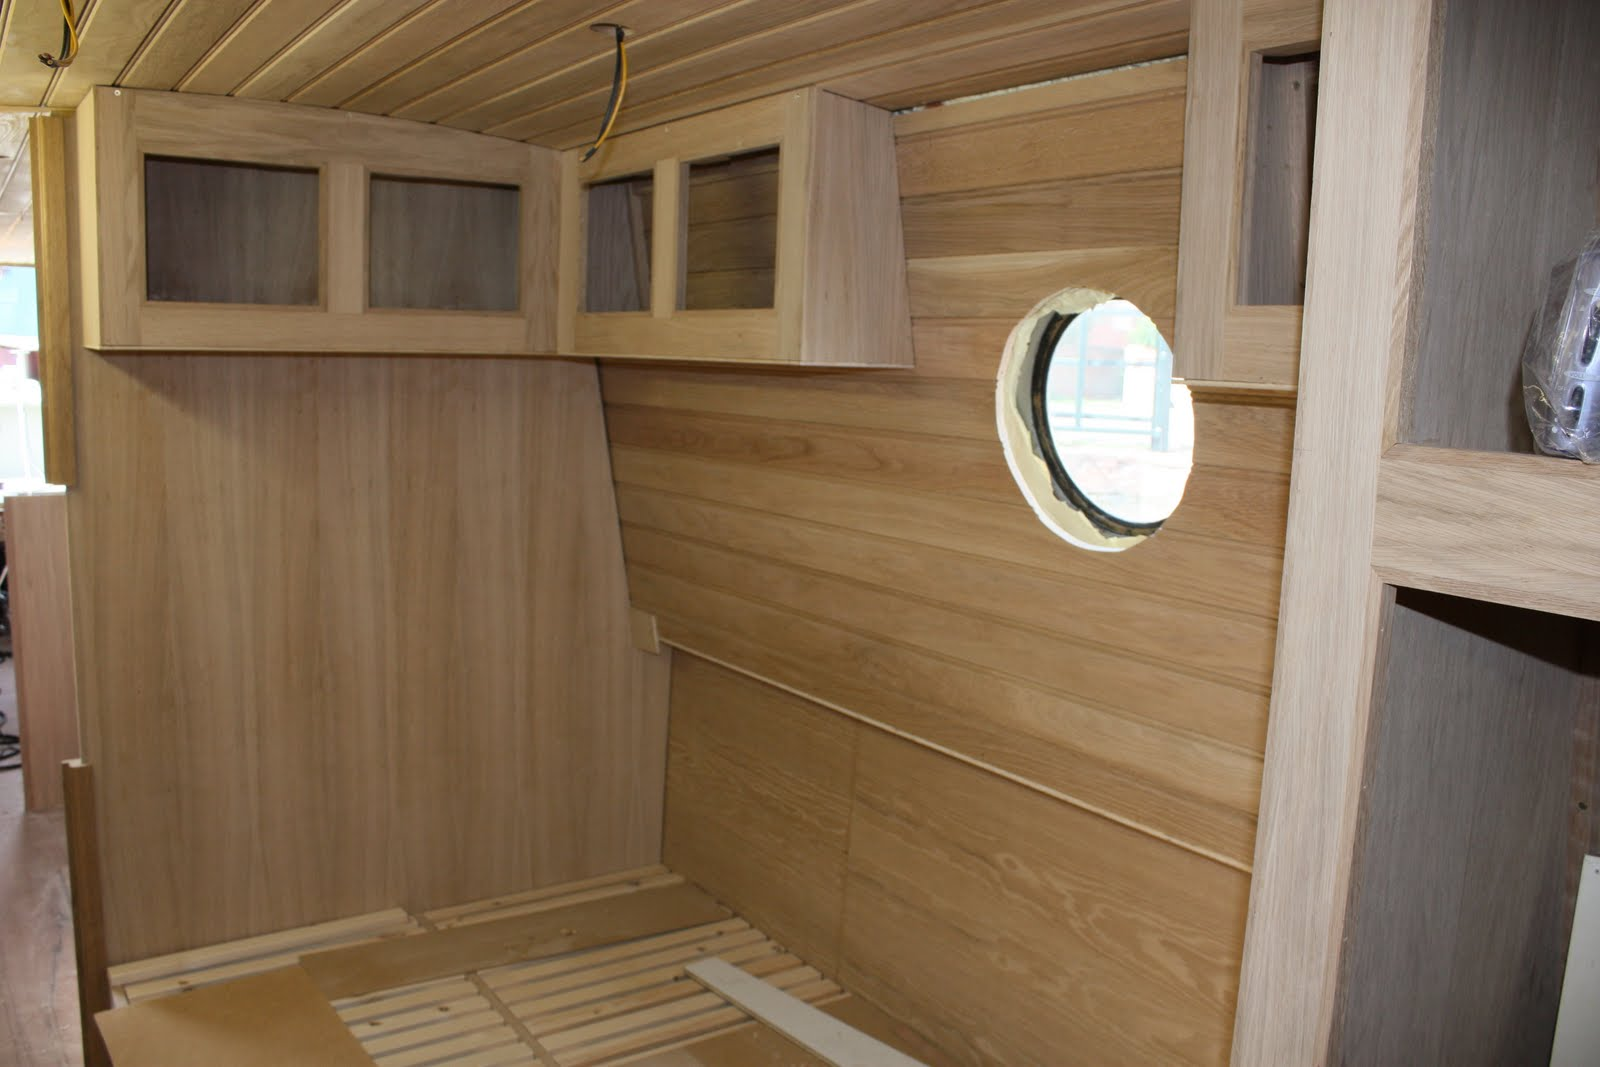 ... woodwork had started in the bedroom but were pleased to see it almost complete including the requested slatted bed base only requiring cupboard doors ... & Build diary of narrowboat Ecky Thump: Steaming ahead